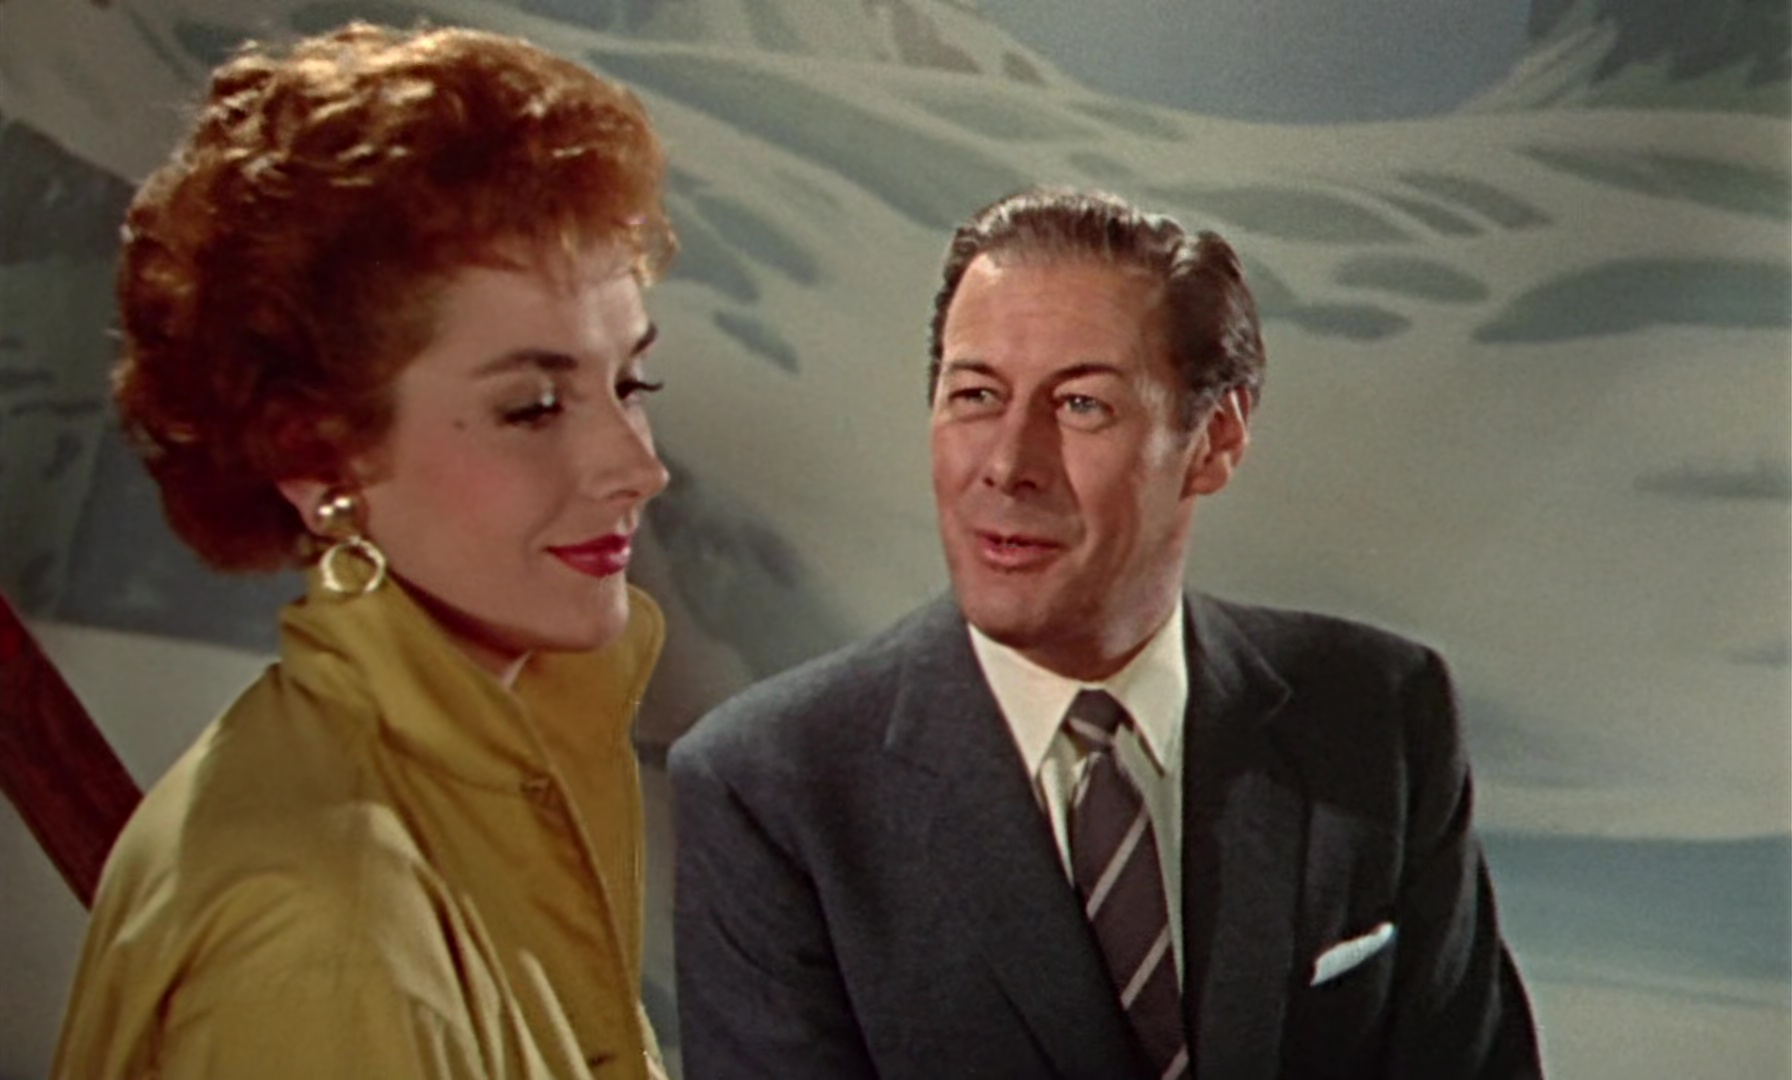 Rex Harrison and Kay Kendall in The Constant Husband (1955)